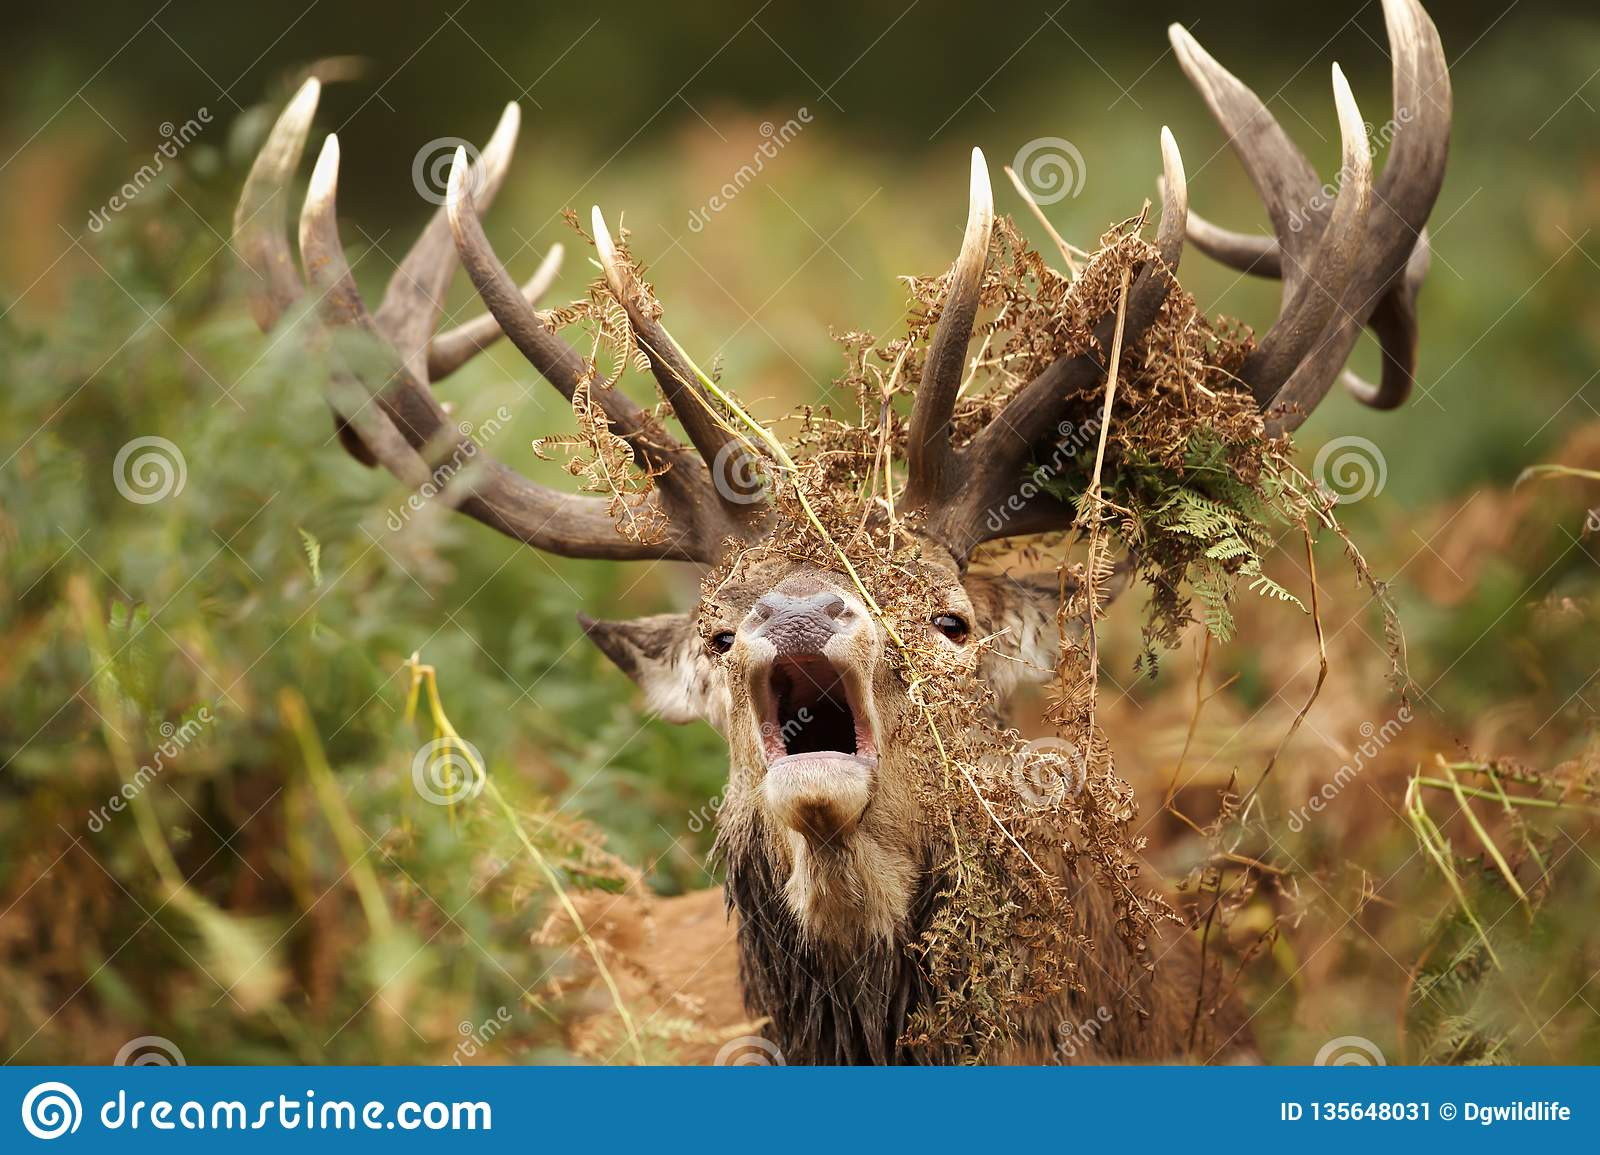 Red deer stag roaring with ferns draped around its antlers